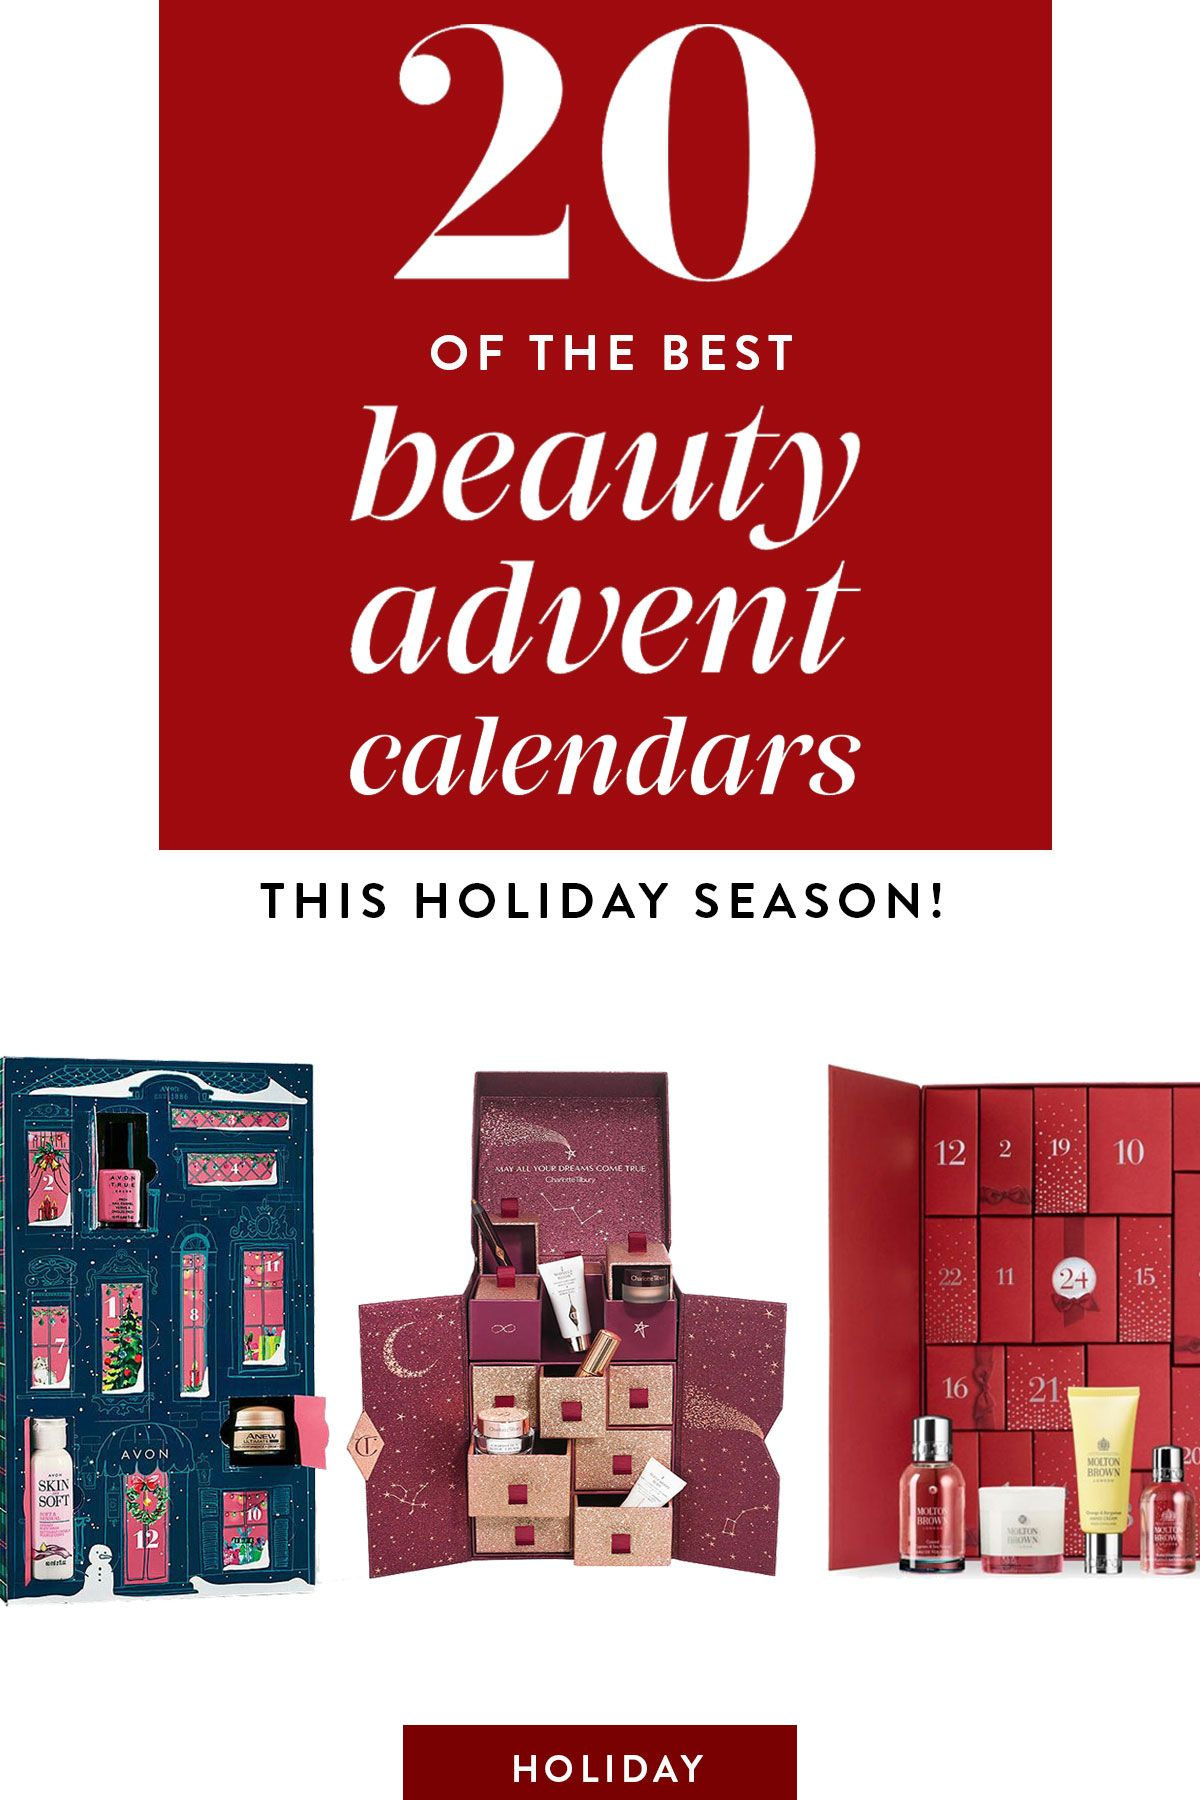 2018's Best Beauty Advent Calendars Get Glam for the